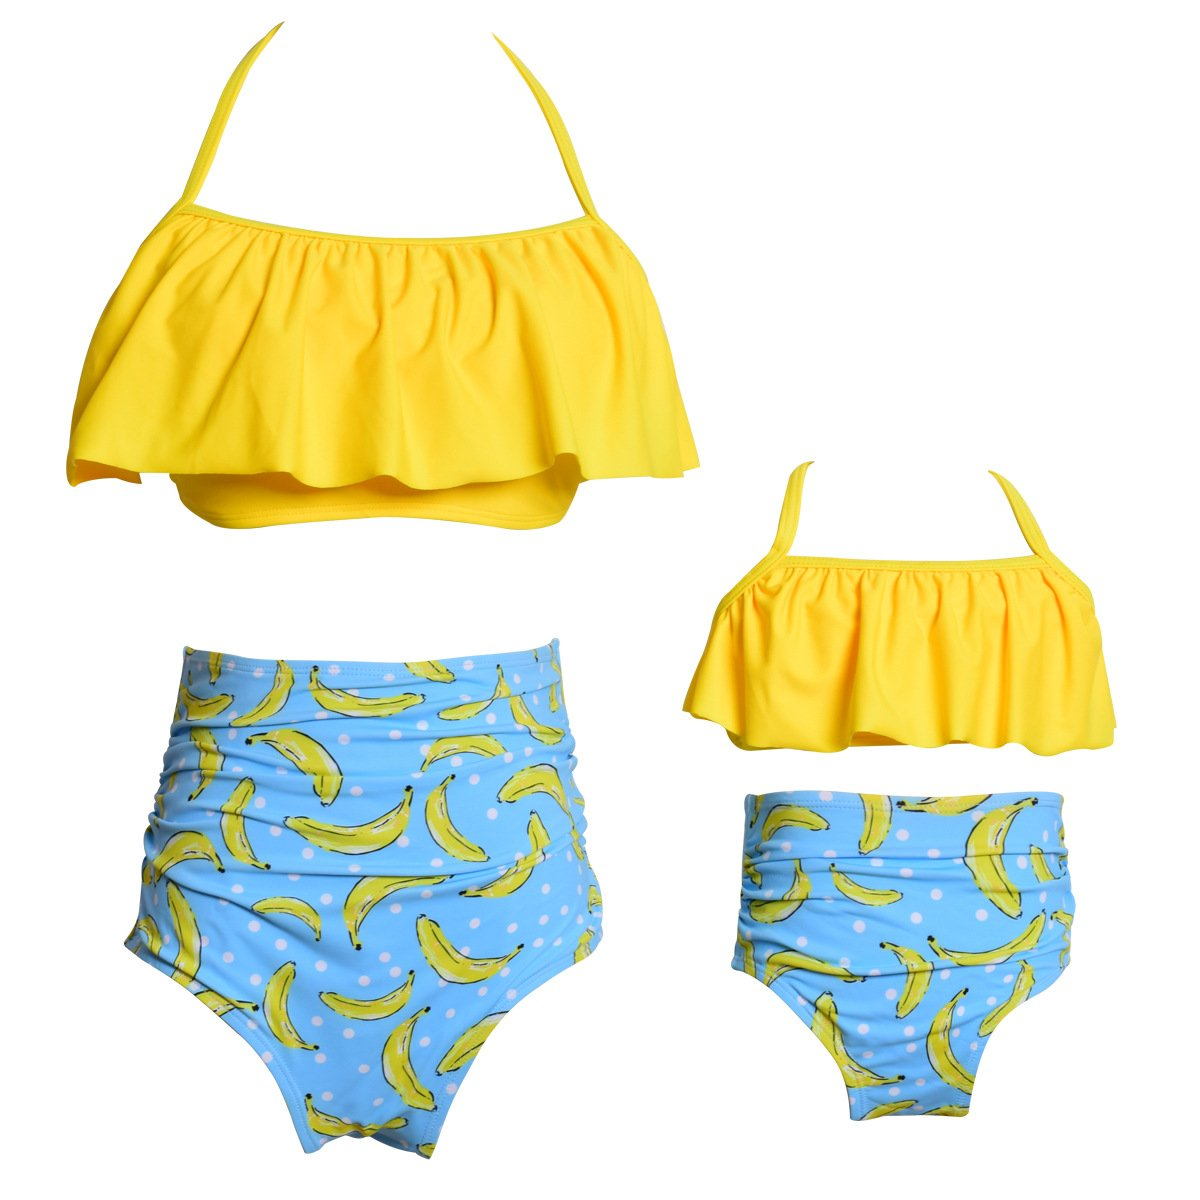 MetCuento Mommy and Me Family Matching Swimsuits Women Swimwear Bikini Set High Waisted Girls Bathing Suit